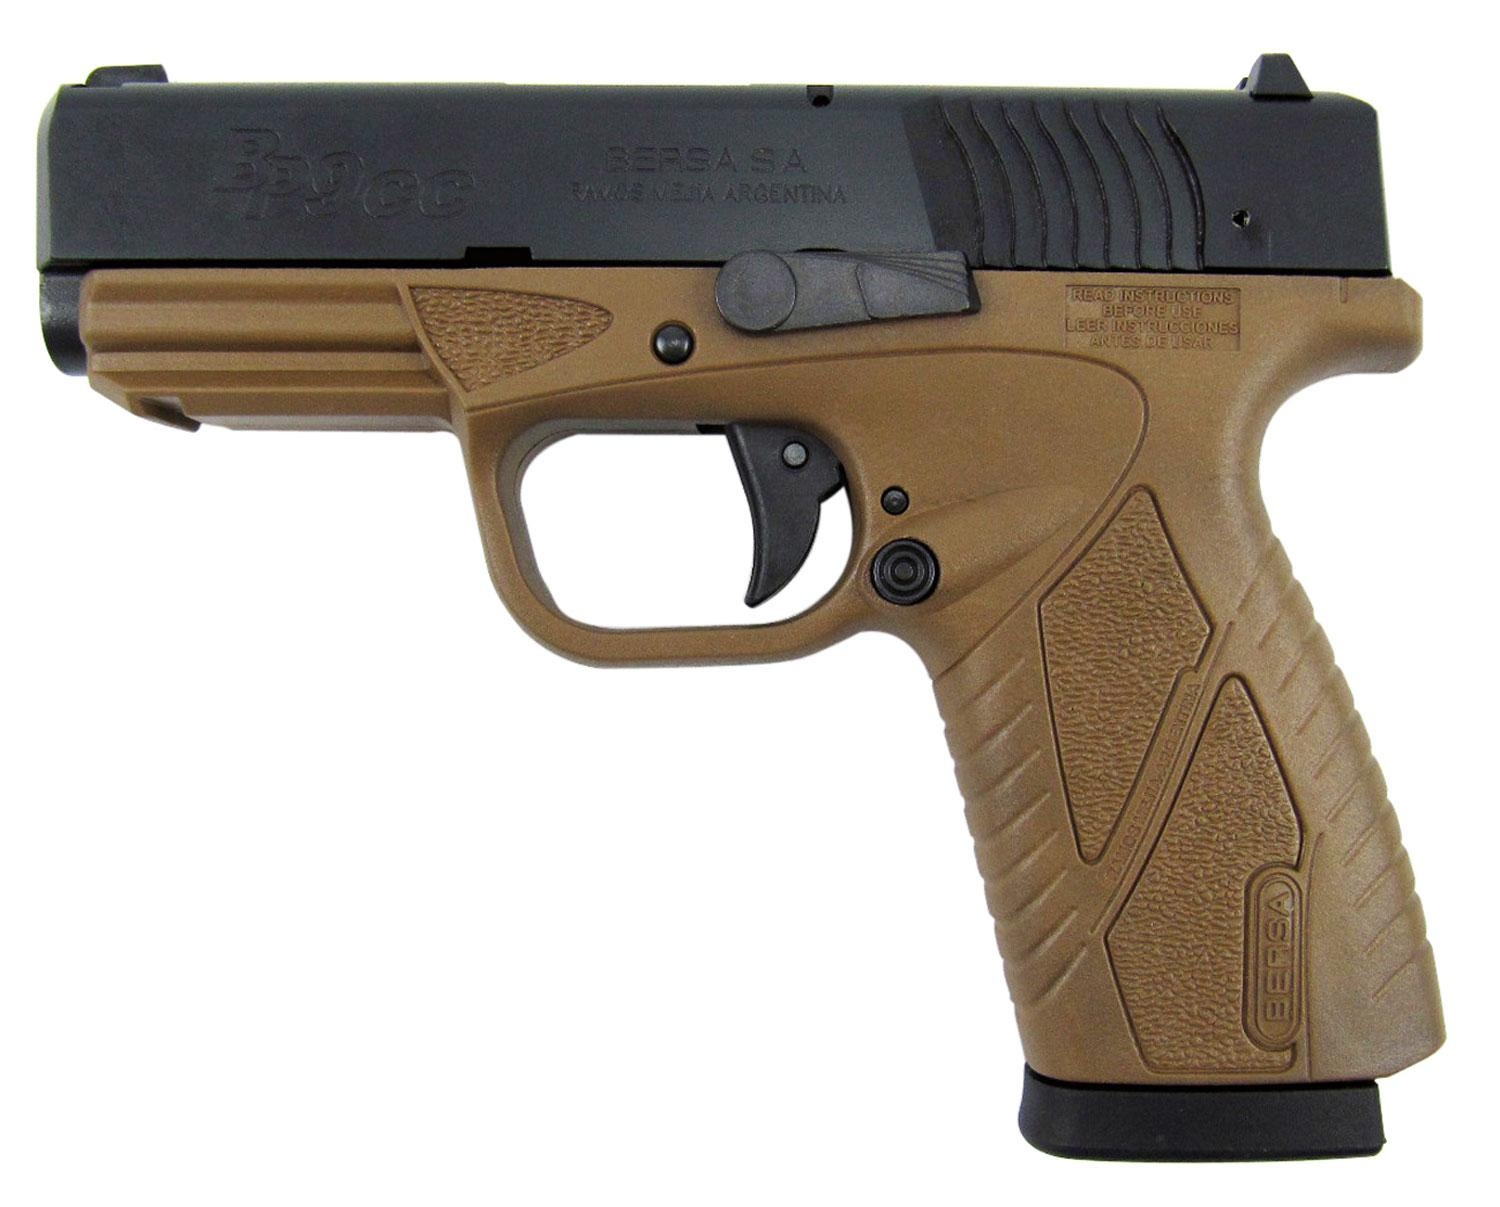 Bersa Bp9decc Bpcc Concealed Carry Double 9mm Luger 3.3